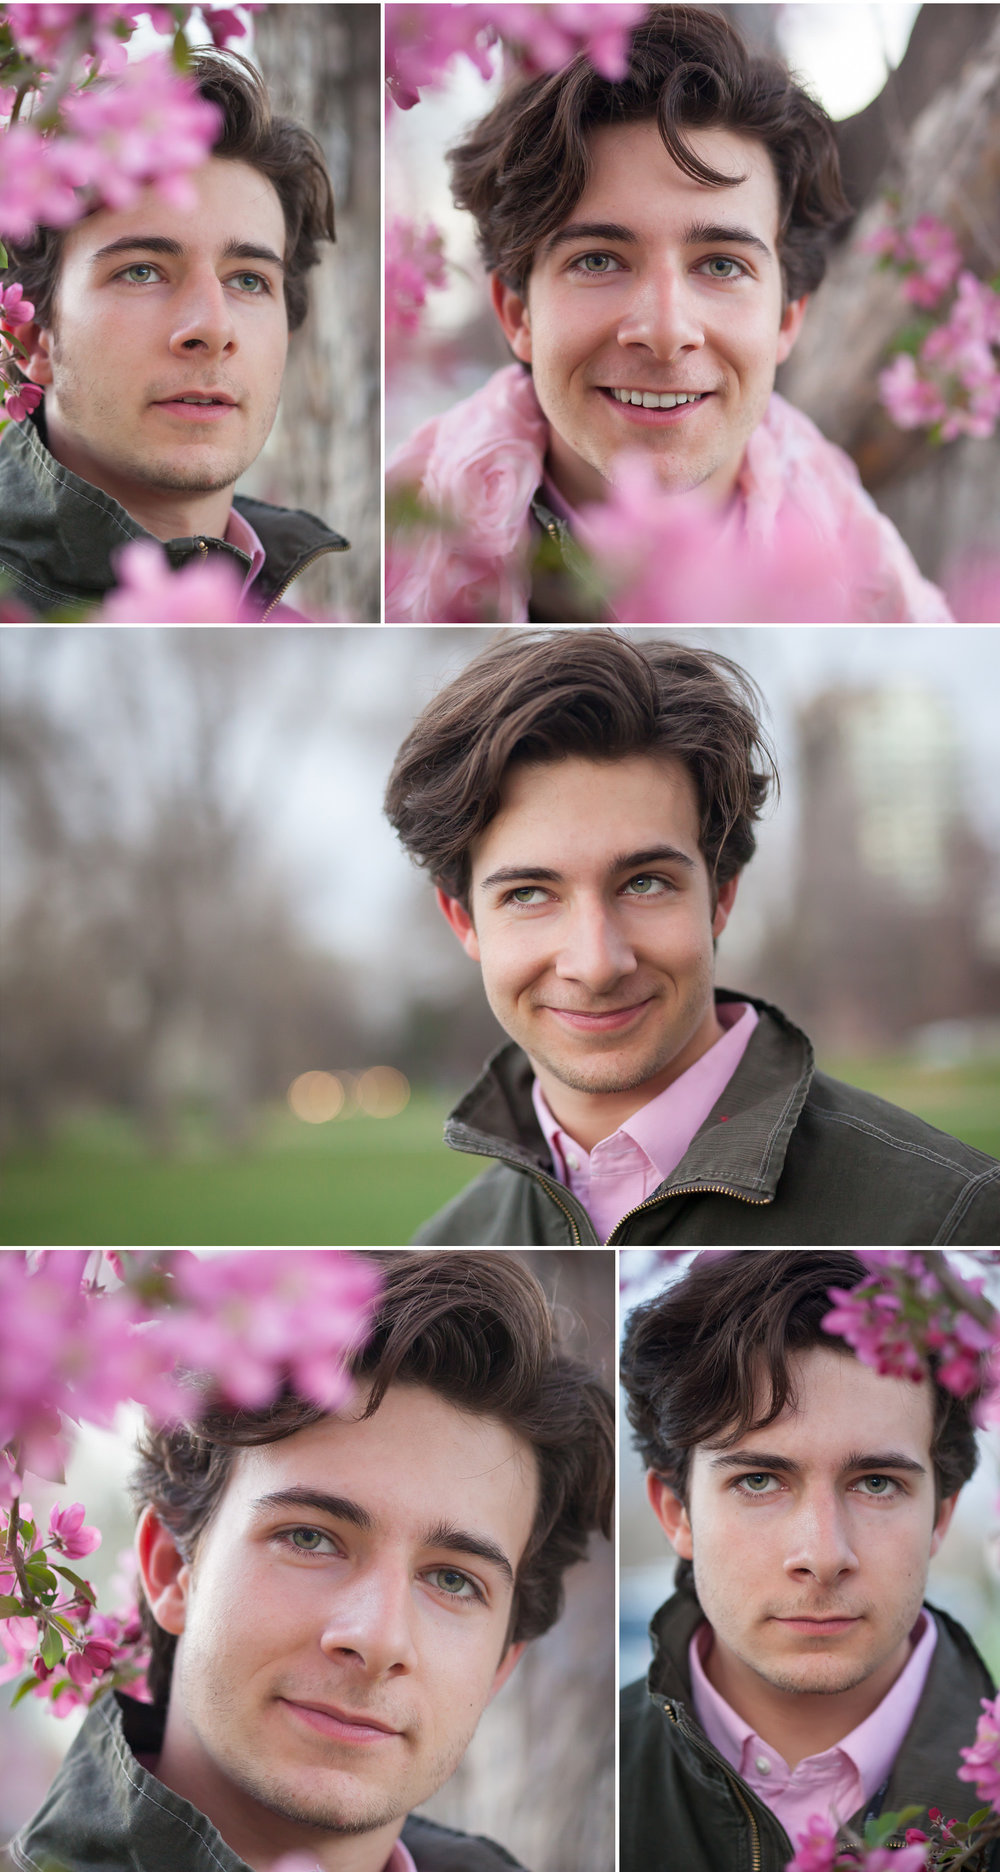 Young actor creatively posing in pink spring flowers, by Denver photographer Jennifer Koskinen, Merritt Portrait Studio